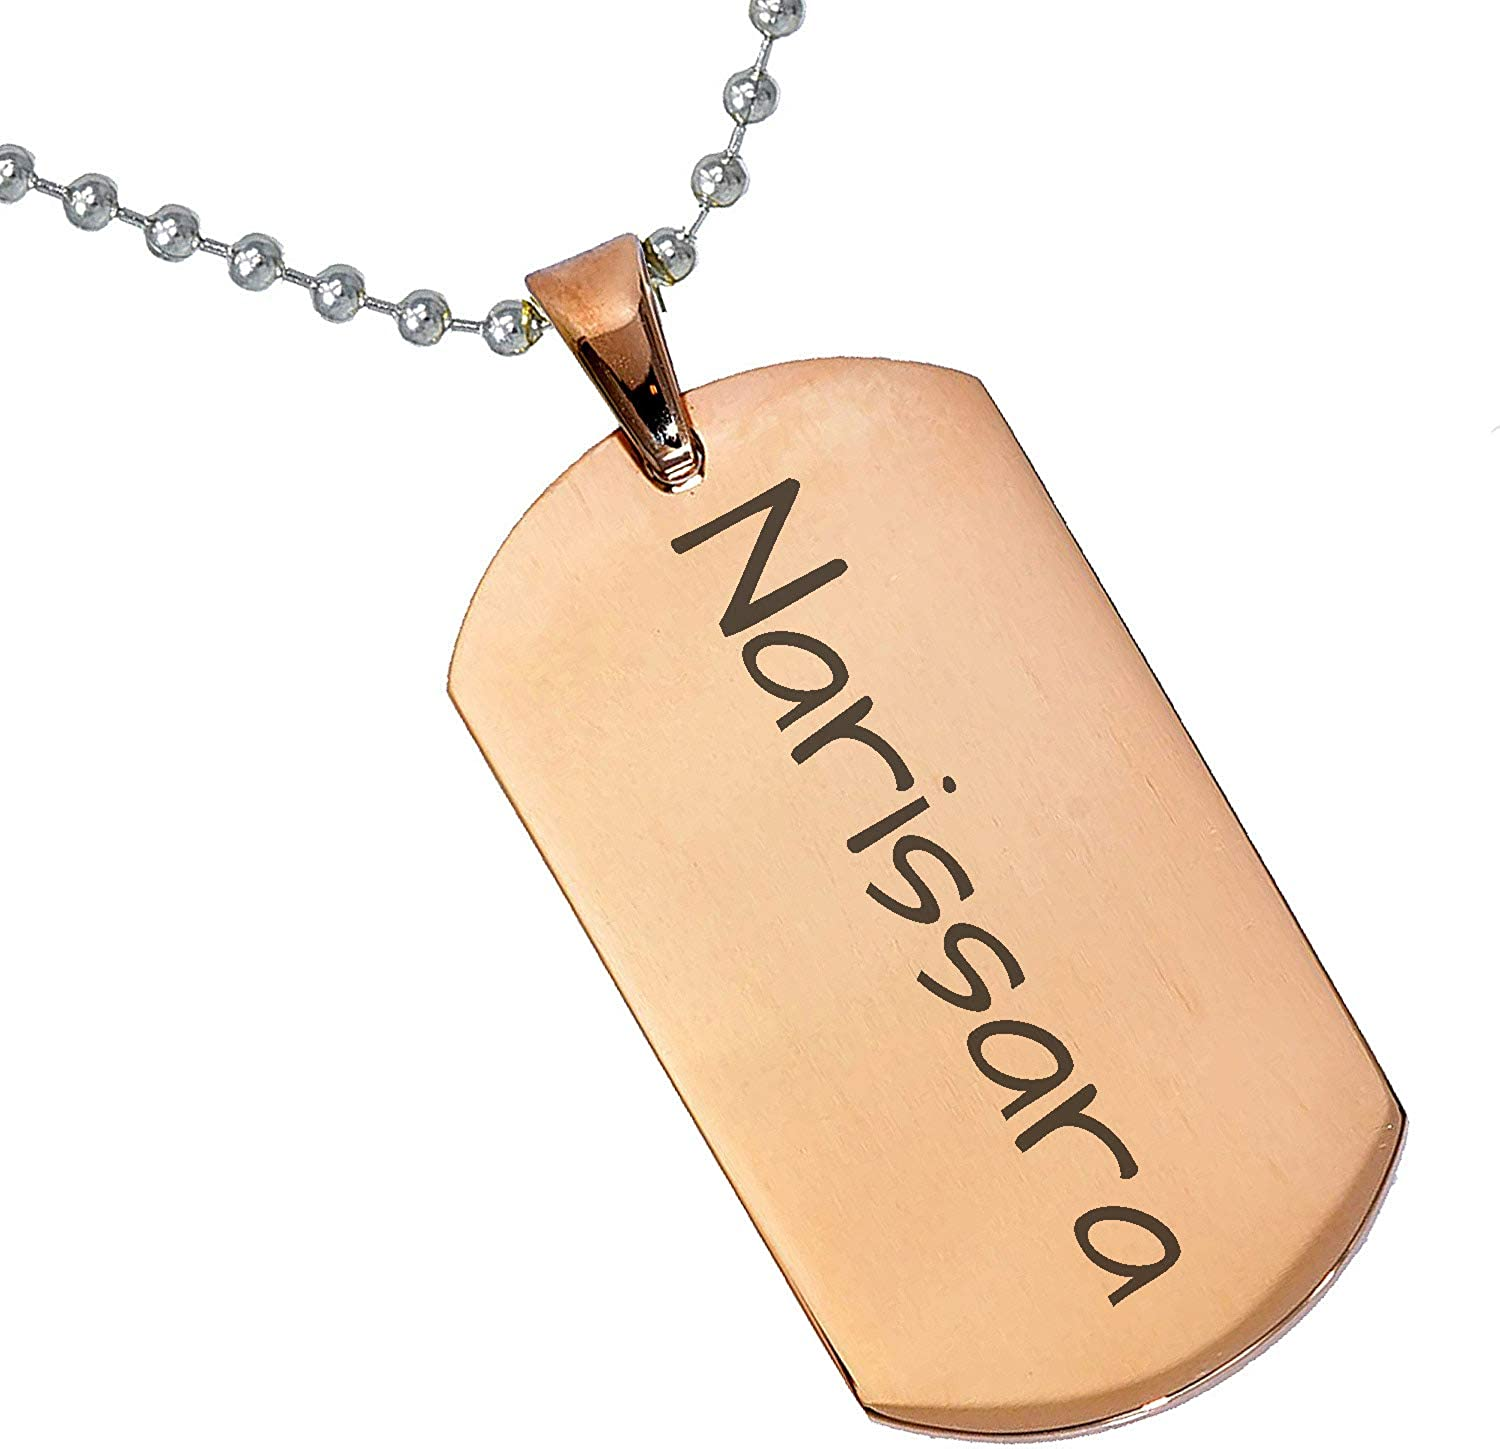 Stainless Steel Silver Gold Black Rose Gold Color Baby Name Narissara Engraved Personalized Gifts For Son Daughter Boyfriend Girlfriend Initial Customizable Pendant Necklace Dog Tags 24 Ball Chain